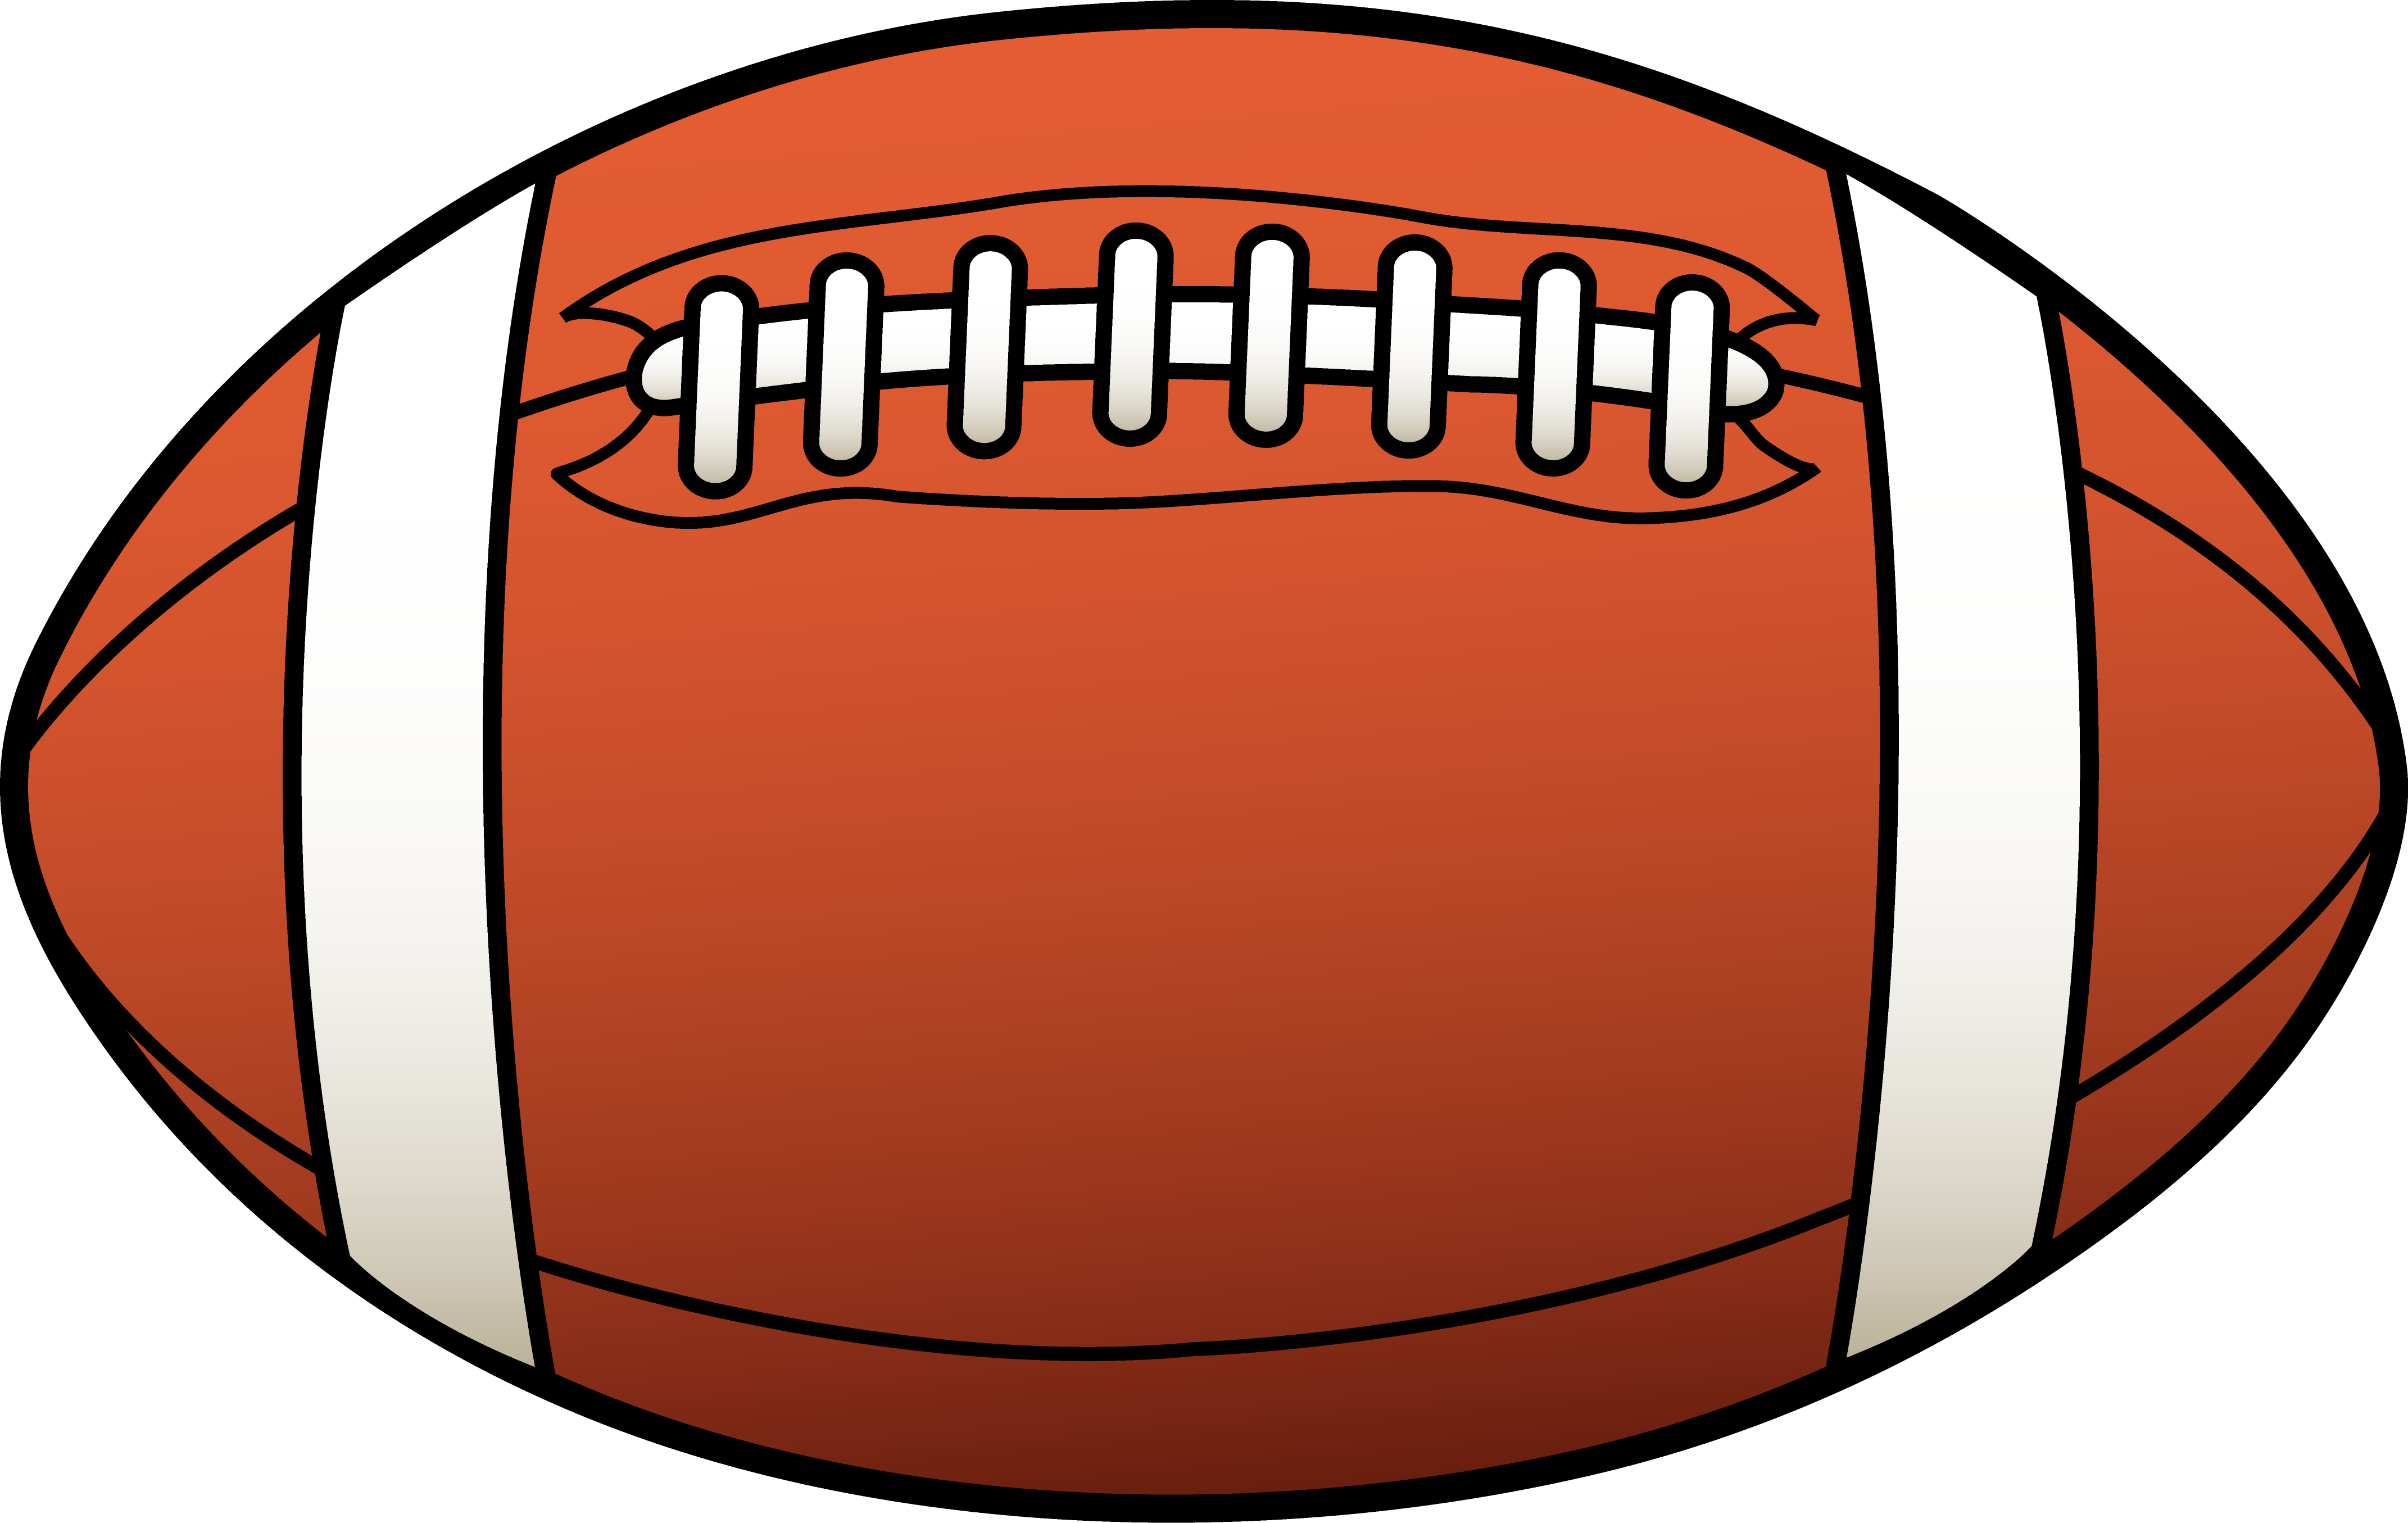 Party clipart football, Party football Transparent FREE for.